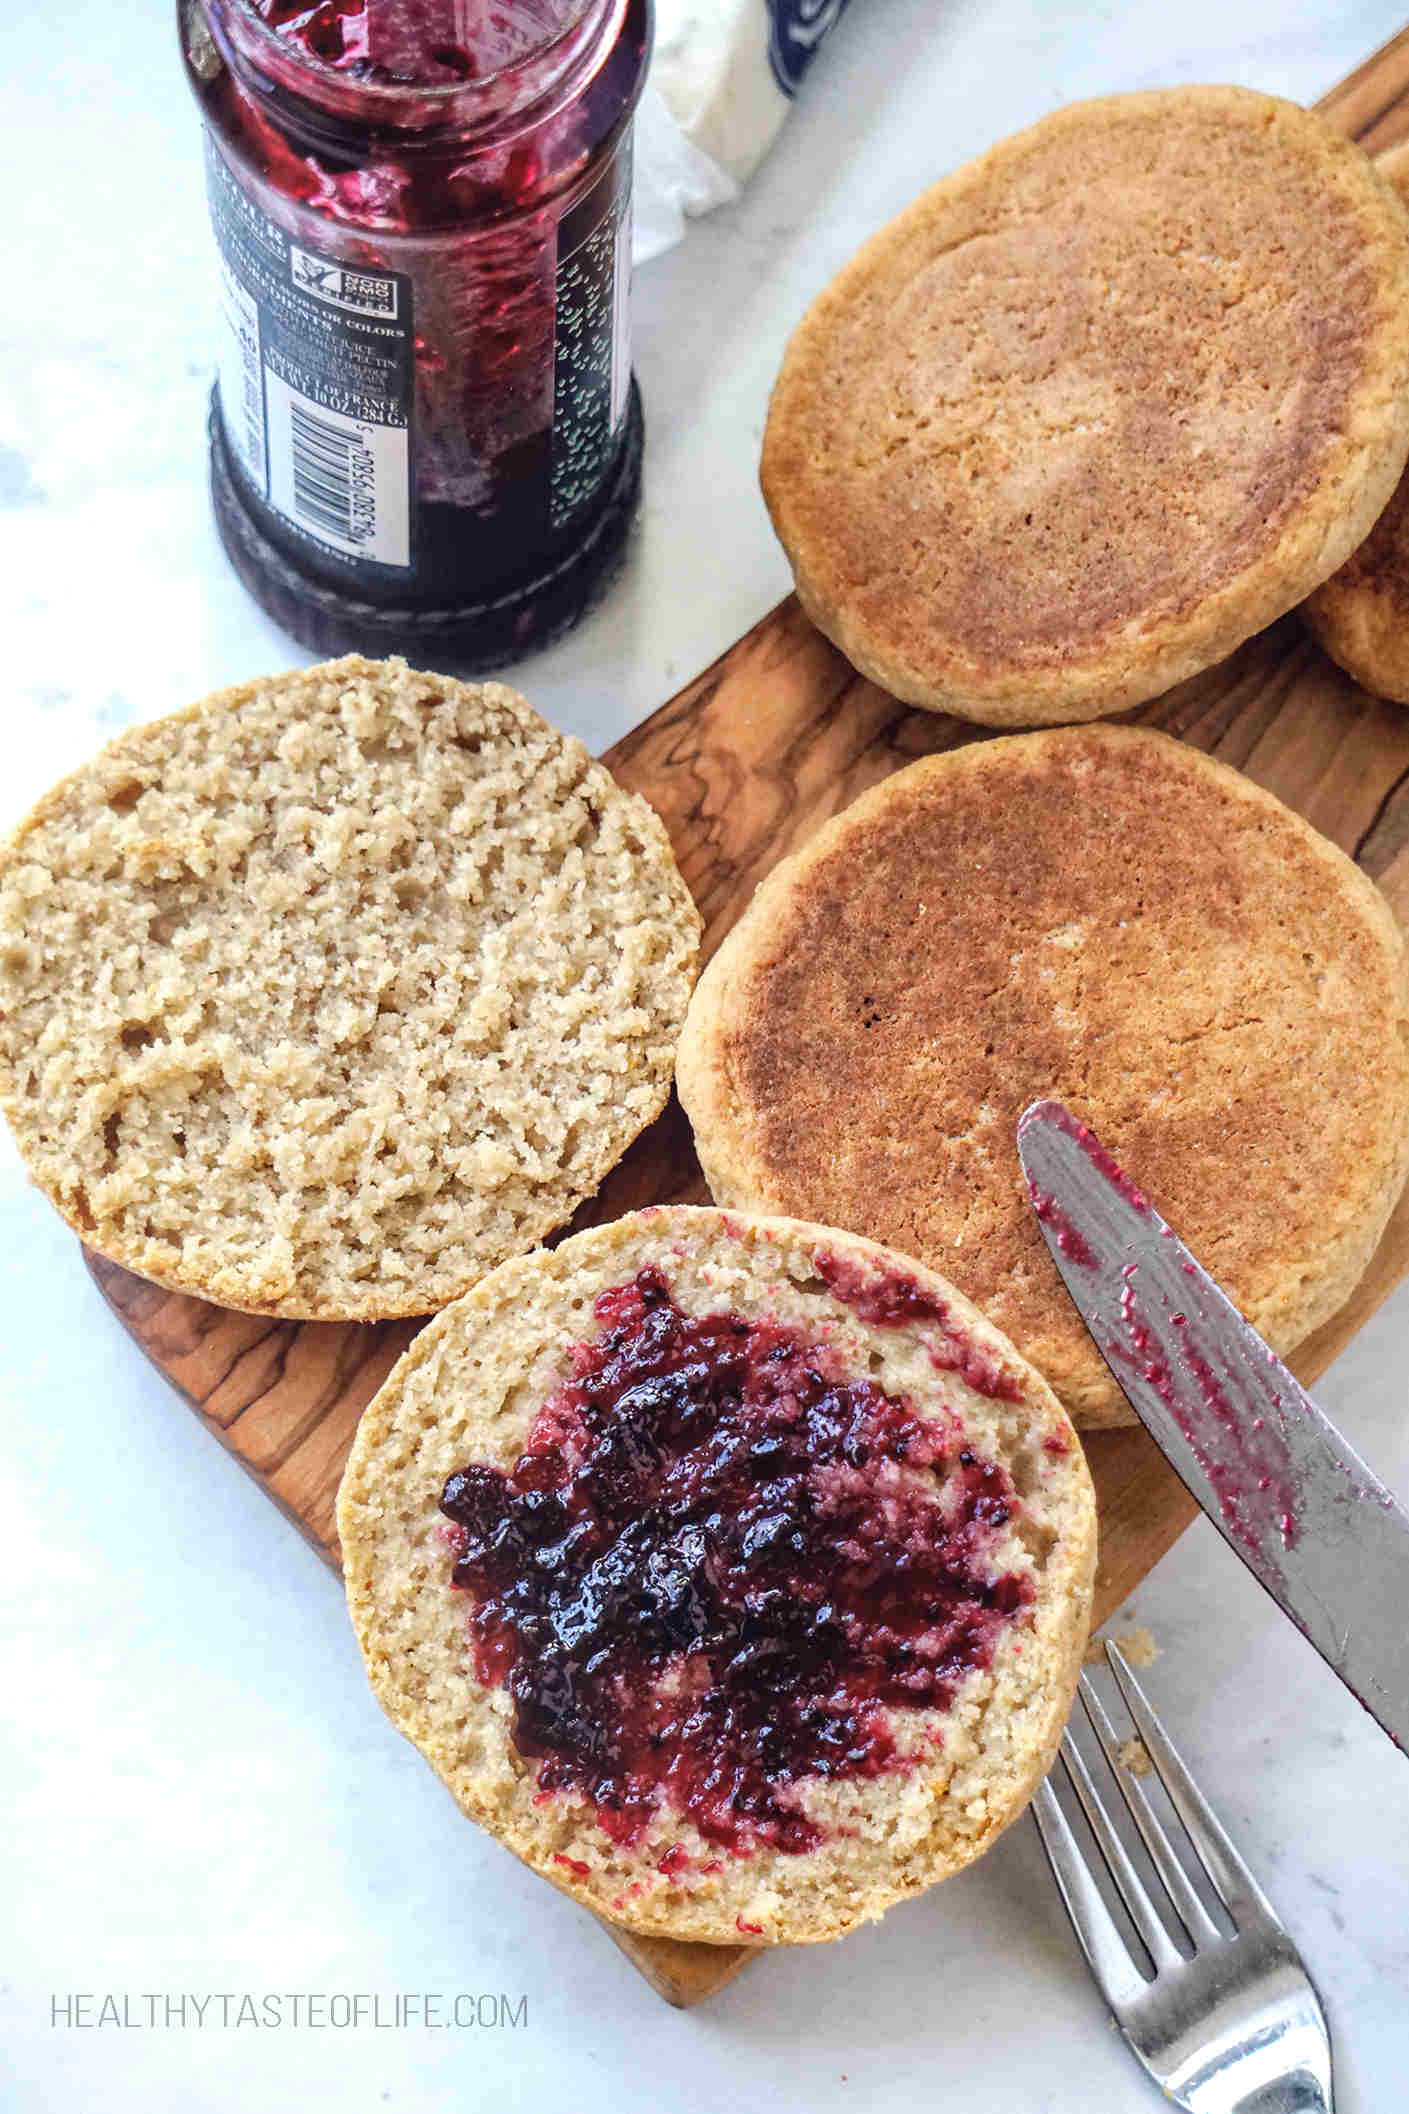 Skinny gluten free English muffins with black currant jam